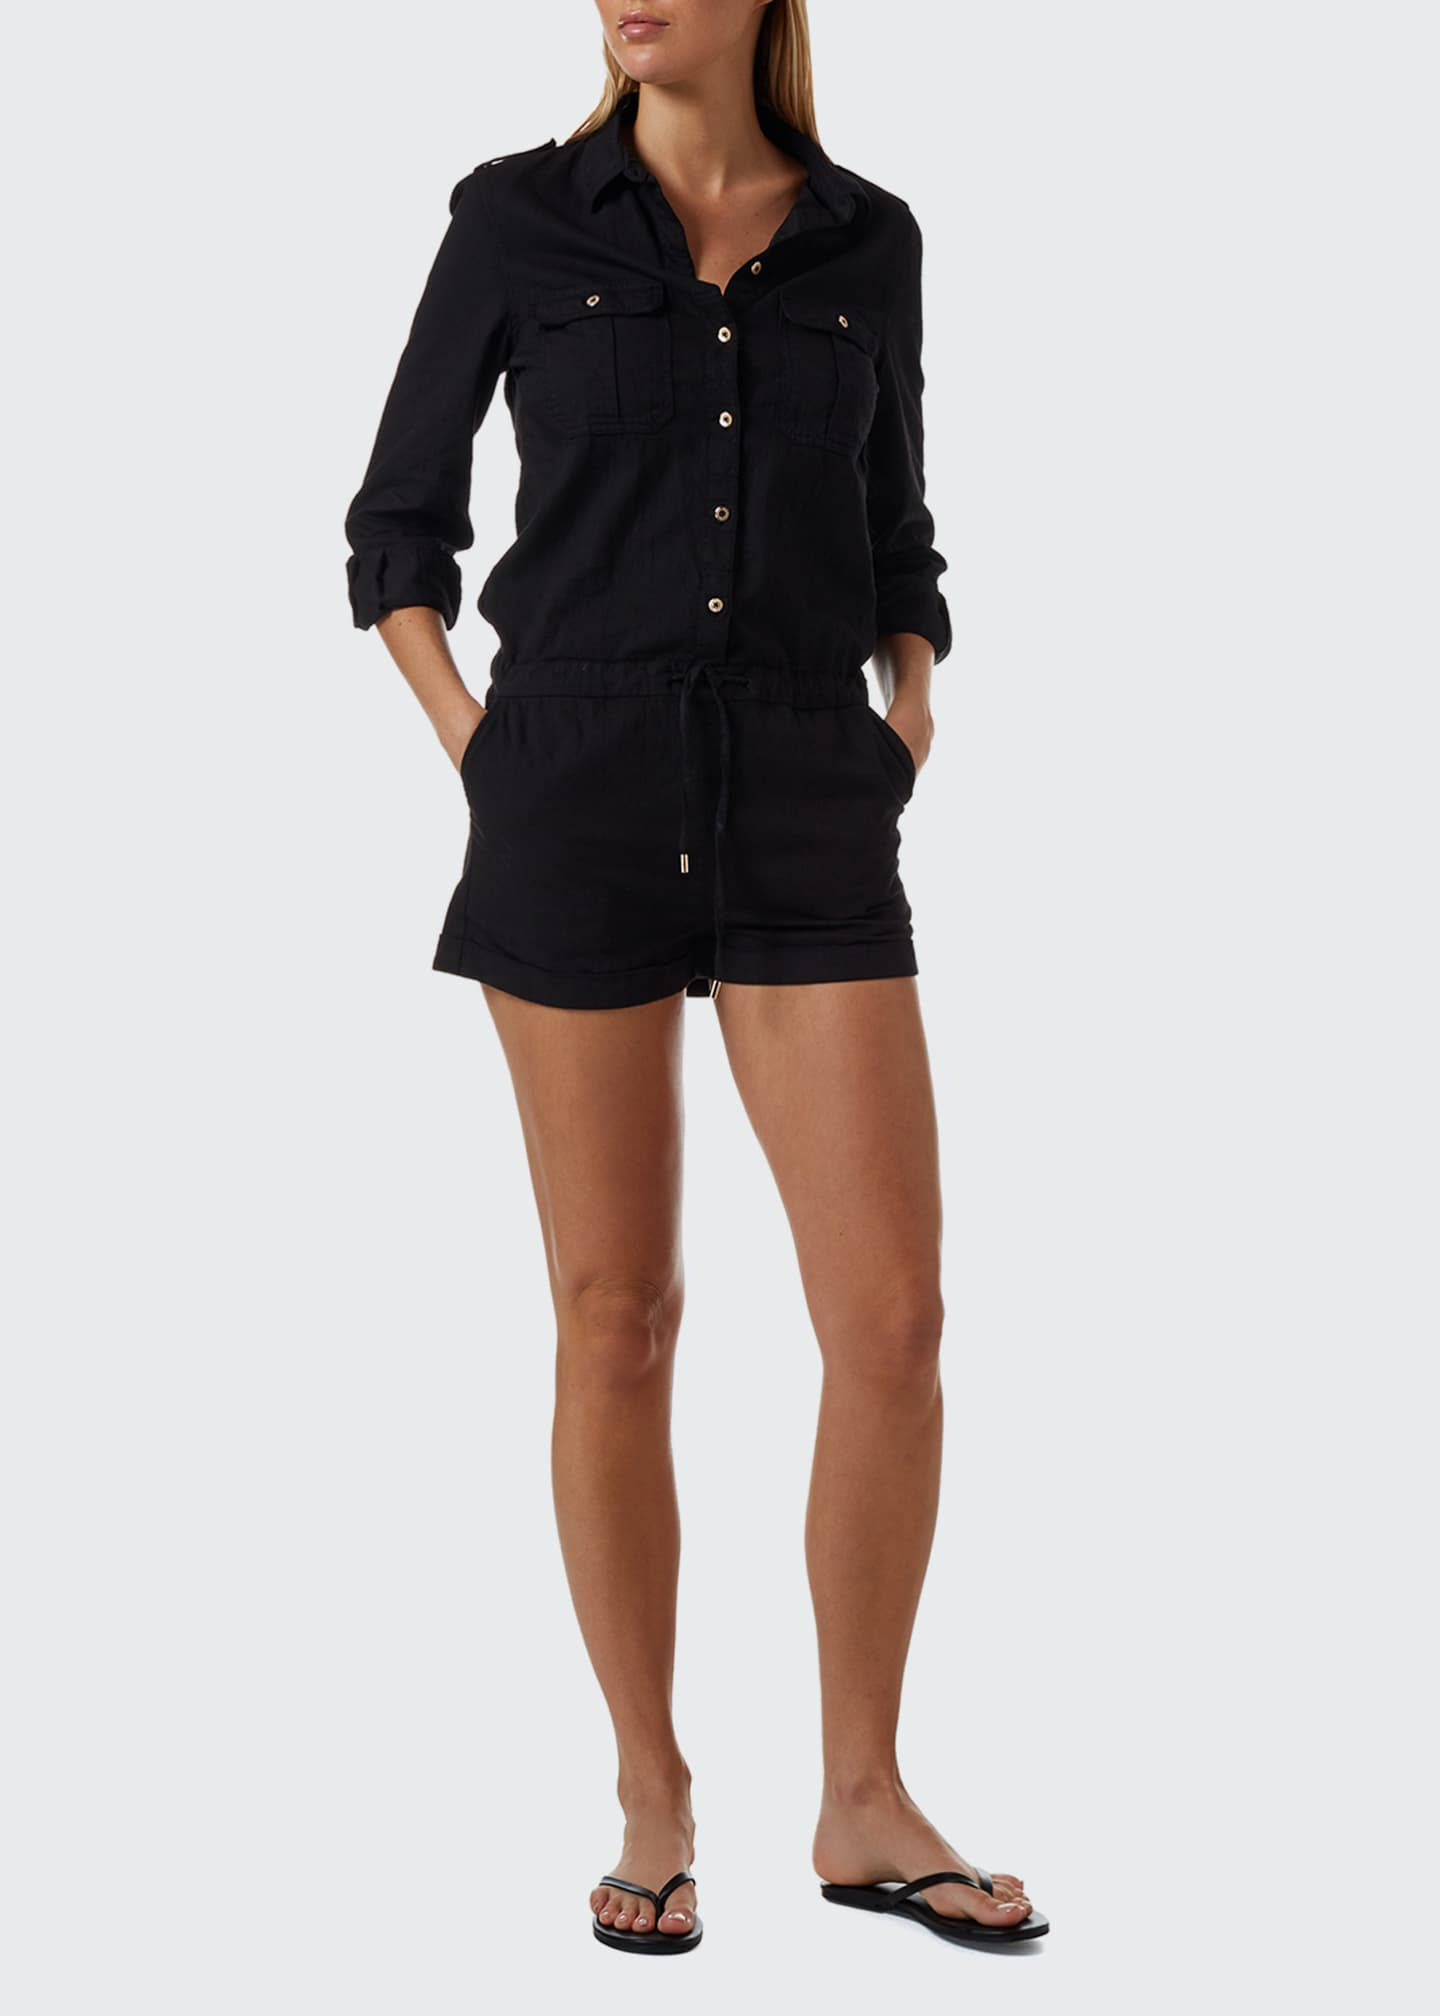 Melissa Odabash Honour Denim Button-Front Romper